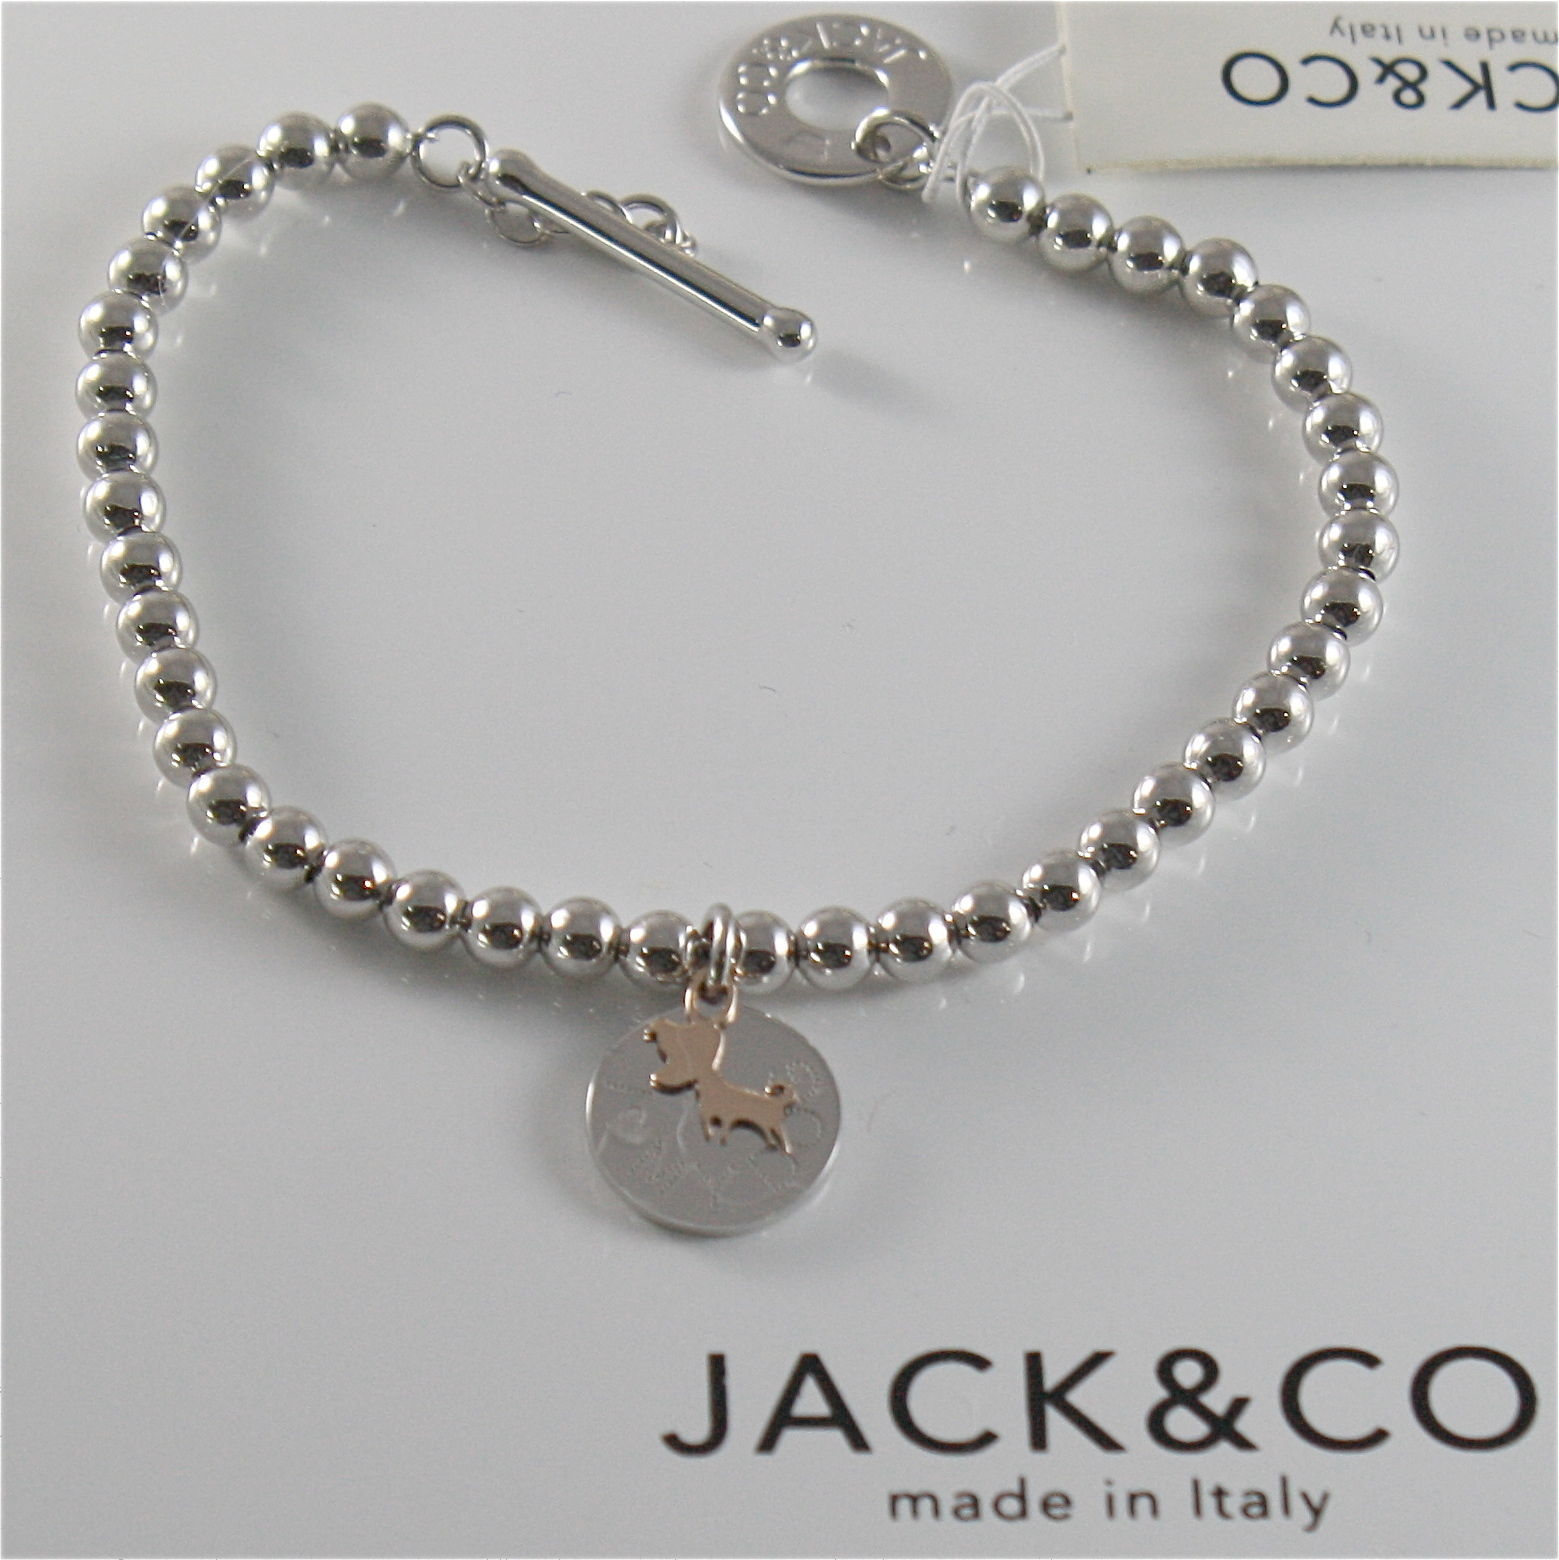 925 RHODIUM SILVER JACK&CO BRACELET 9KT ROSE GOLD JACK RUSSEL DOG  MADE IN ITALY